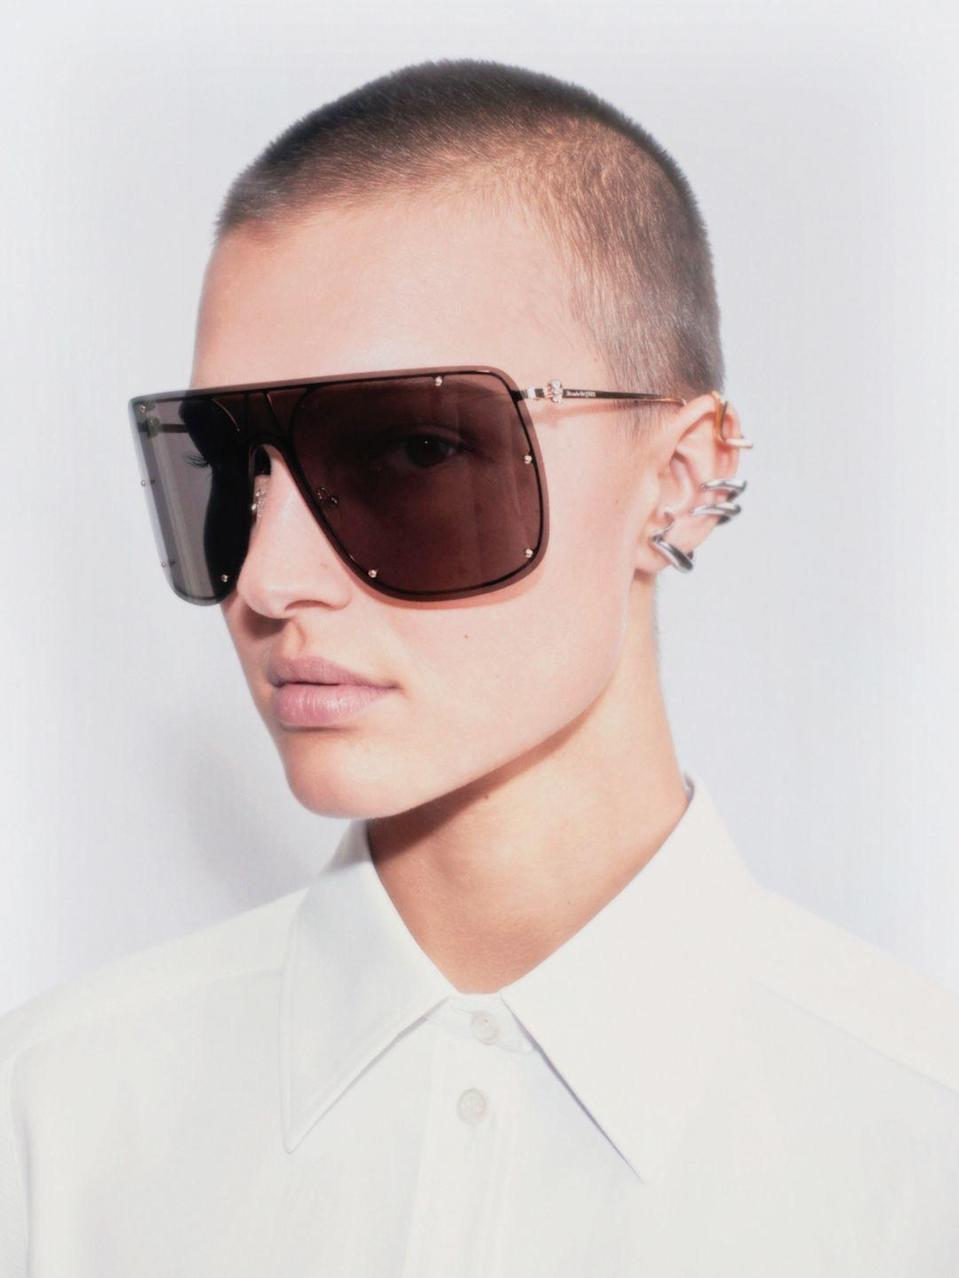 """<p><strong>Who: </strong>Alexander McQueen</p><p><strong>What: </strong>Skull Mask sunglasses</p><p><strong>Where:</strong> Available on Alexandermcqueen.com</p><p><strong>Why: </strong>We're all used to covering our faces at this point, and these McQueen sunglasses allow for even more facial coverage. The XL frames are industrial chic and will keep you covered from the sun all summer long. The metal frames have a miniature skull on the temple, a signature motif of McQueen that brings the gothic edge to these sleek sunnies.</p><p><a class=""""link rapid-noclick-resp"""" href=""""https://go.redirectingat.com?id=74968X1596630&url=https%3A%2F%2Fwww.alexandermcqueen.com%2Fen-us%2Fsearch%3Fq%3Dskull%2Bmask%26lang%3Den_US&sref=https%3A%2F%2Fwww.elle.com%2Ffashion%2Fshopping%2Fg35685914%2Fmarch-2021-fashion-collaborations-launches%2F"""" rel=""""nofollow noopener"""" target=""""_blank"""" data-ylk=""""slk:SHOP NOW"""">SHOP NOW</a></p>"""